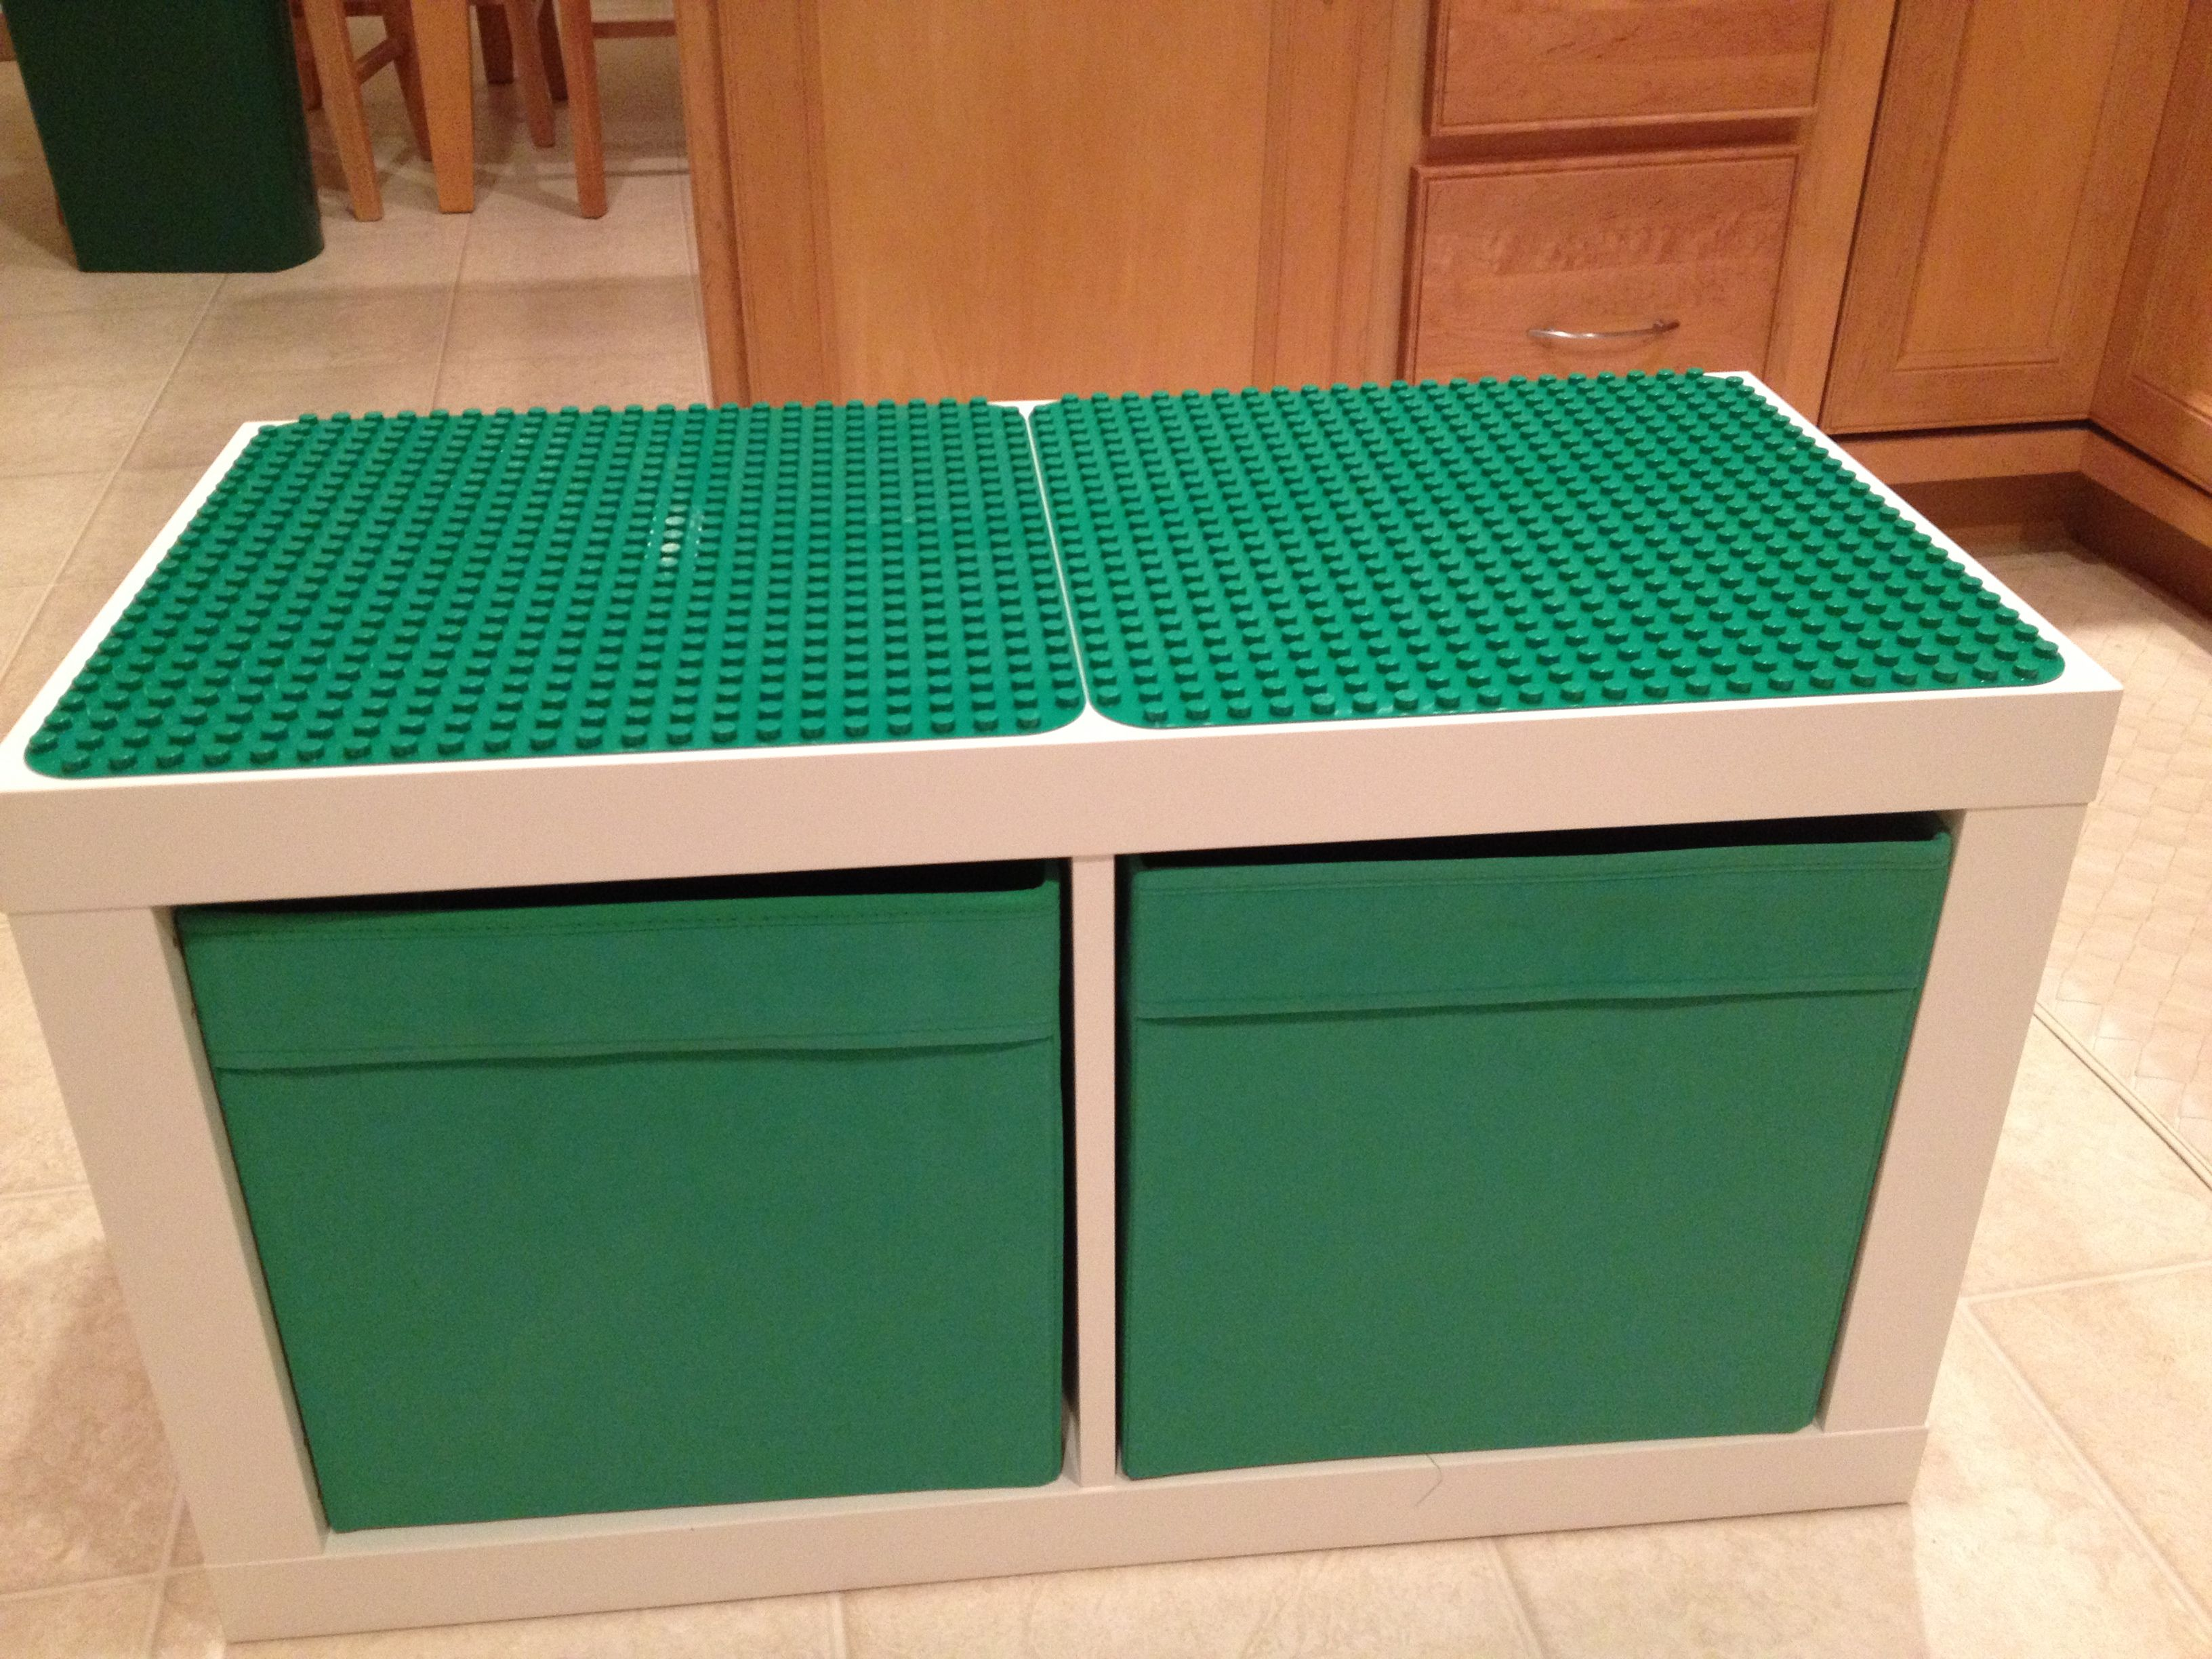 Ikea Expedit Länge 20 Perfect Lego Tables Full Of Storages Lego Tables Ikea